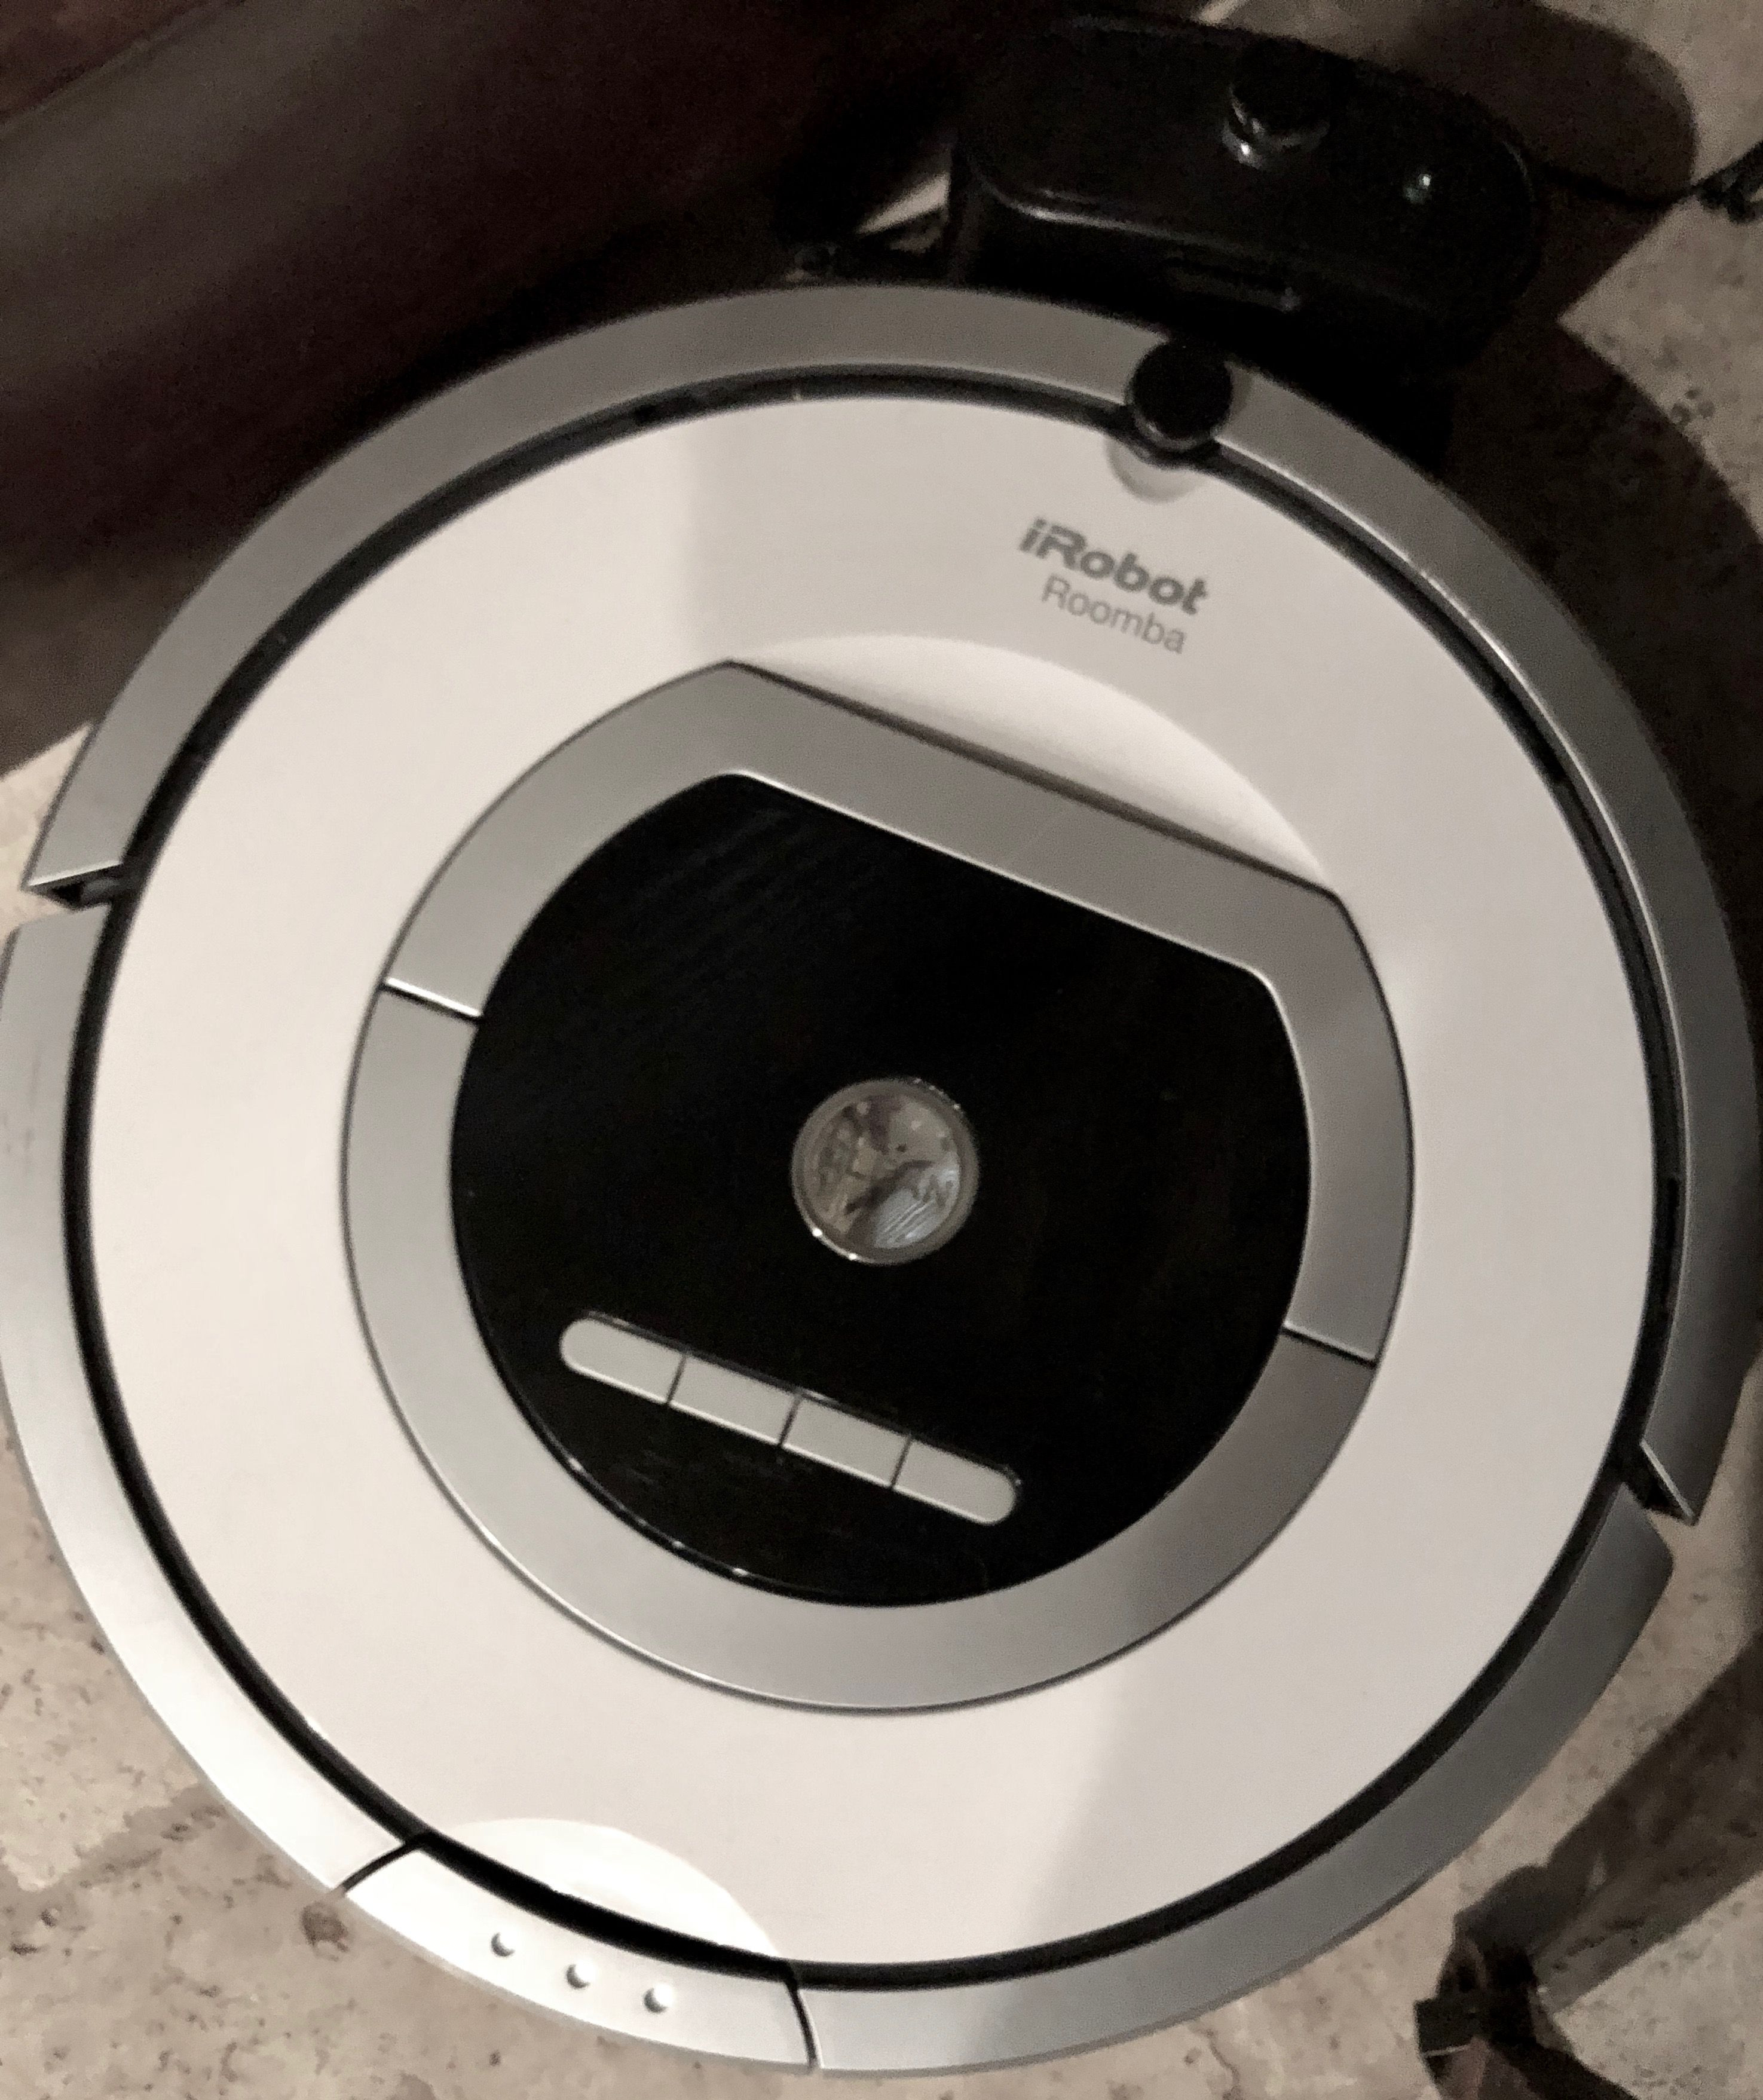 Roomba Carpet Fringe Review Home Co